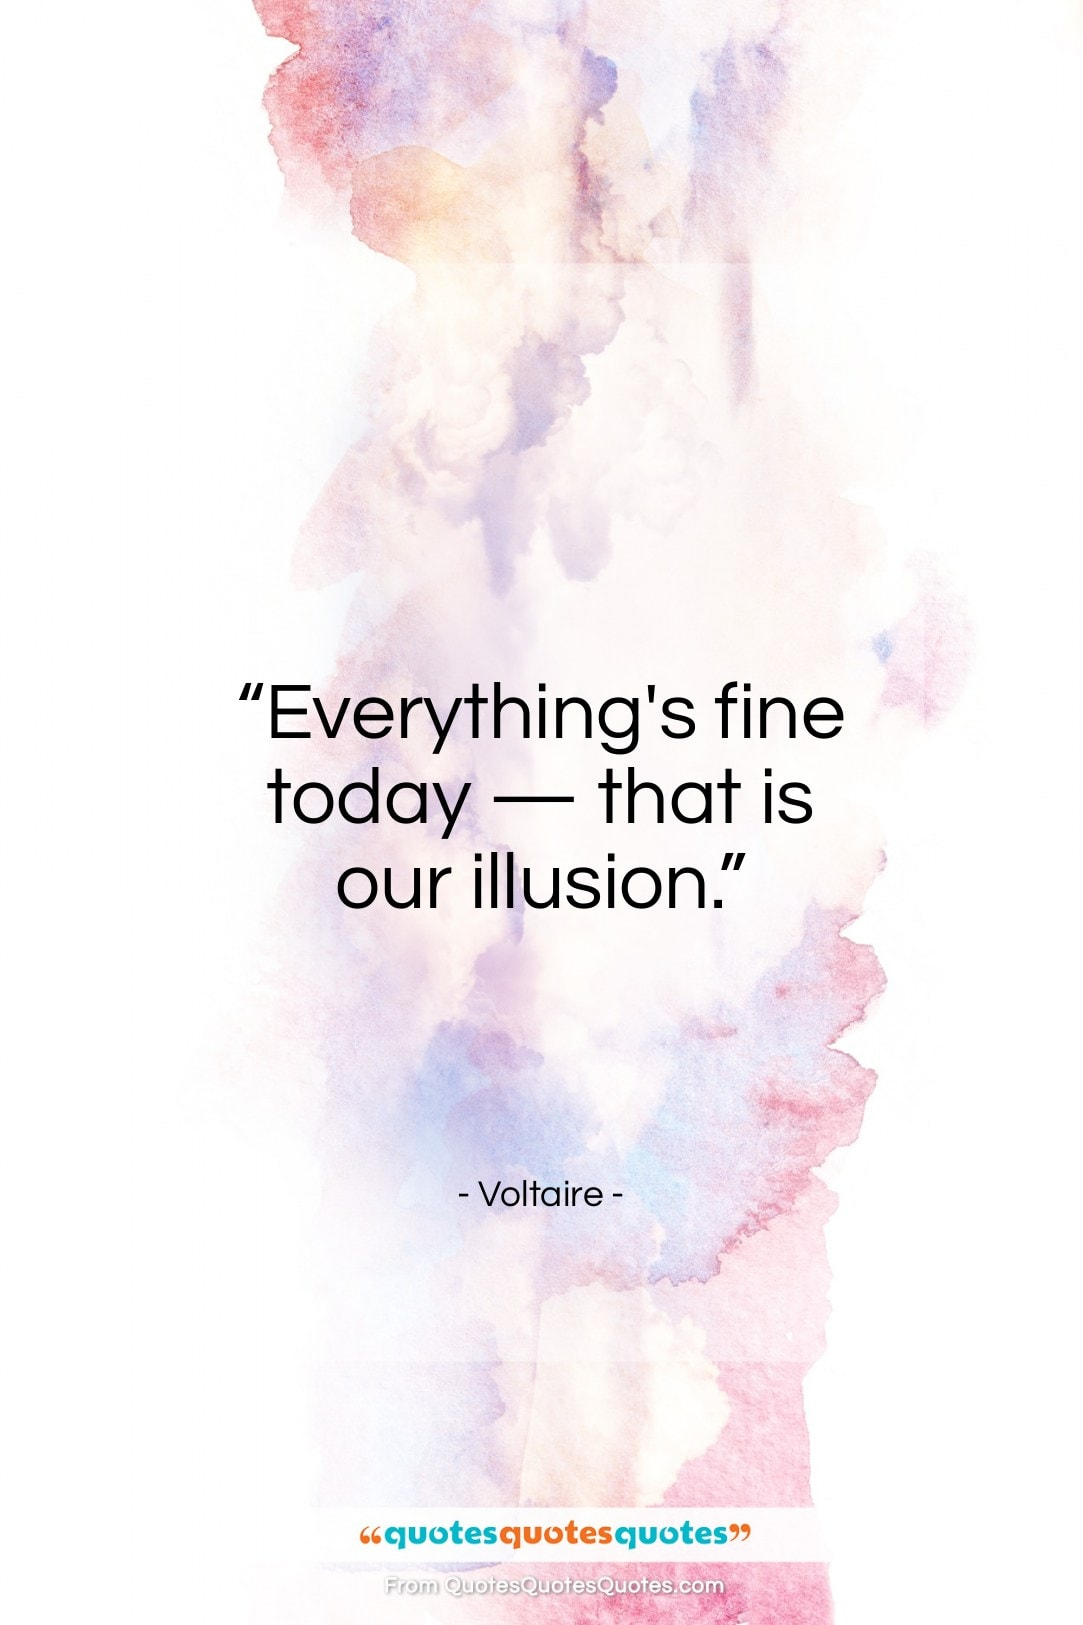 Get The Whole Voltaire Quote Everythings Fine Today That Is Our